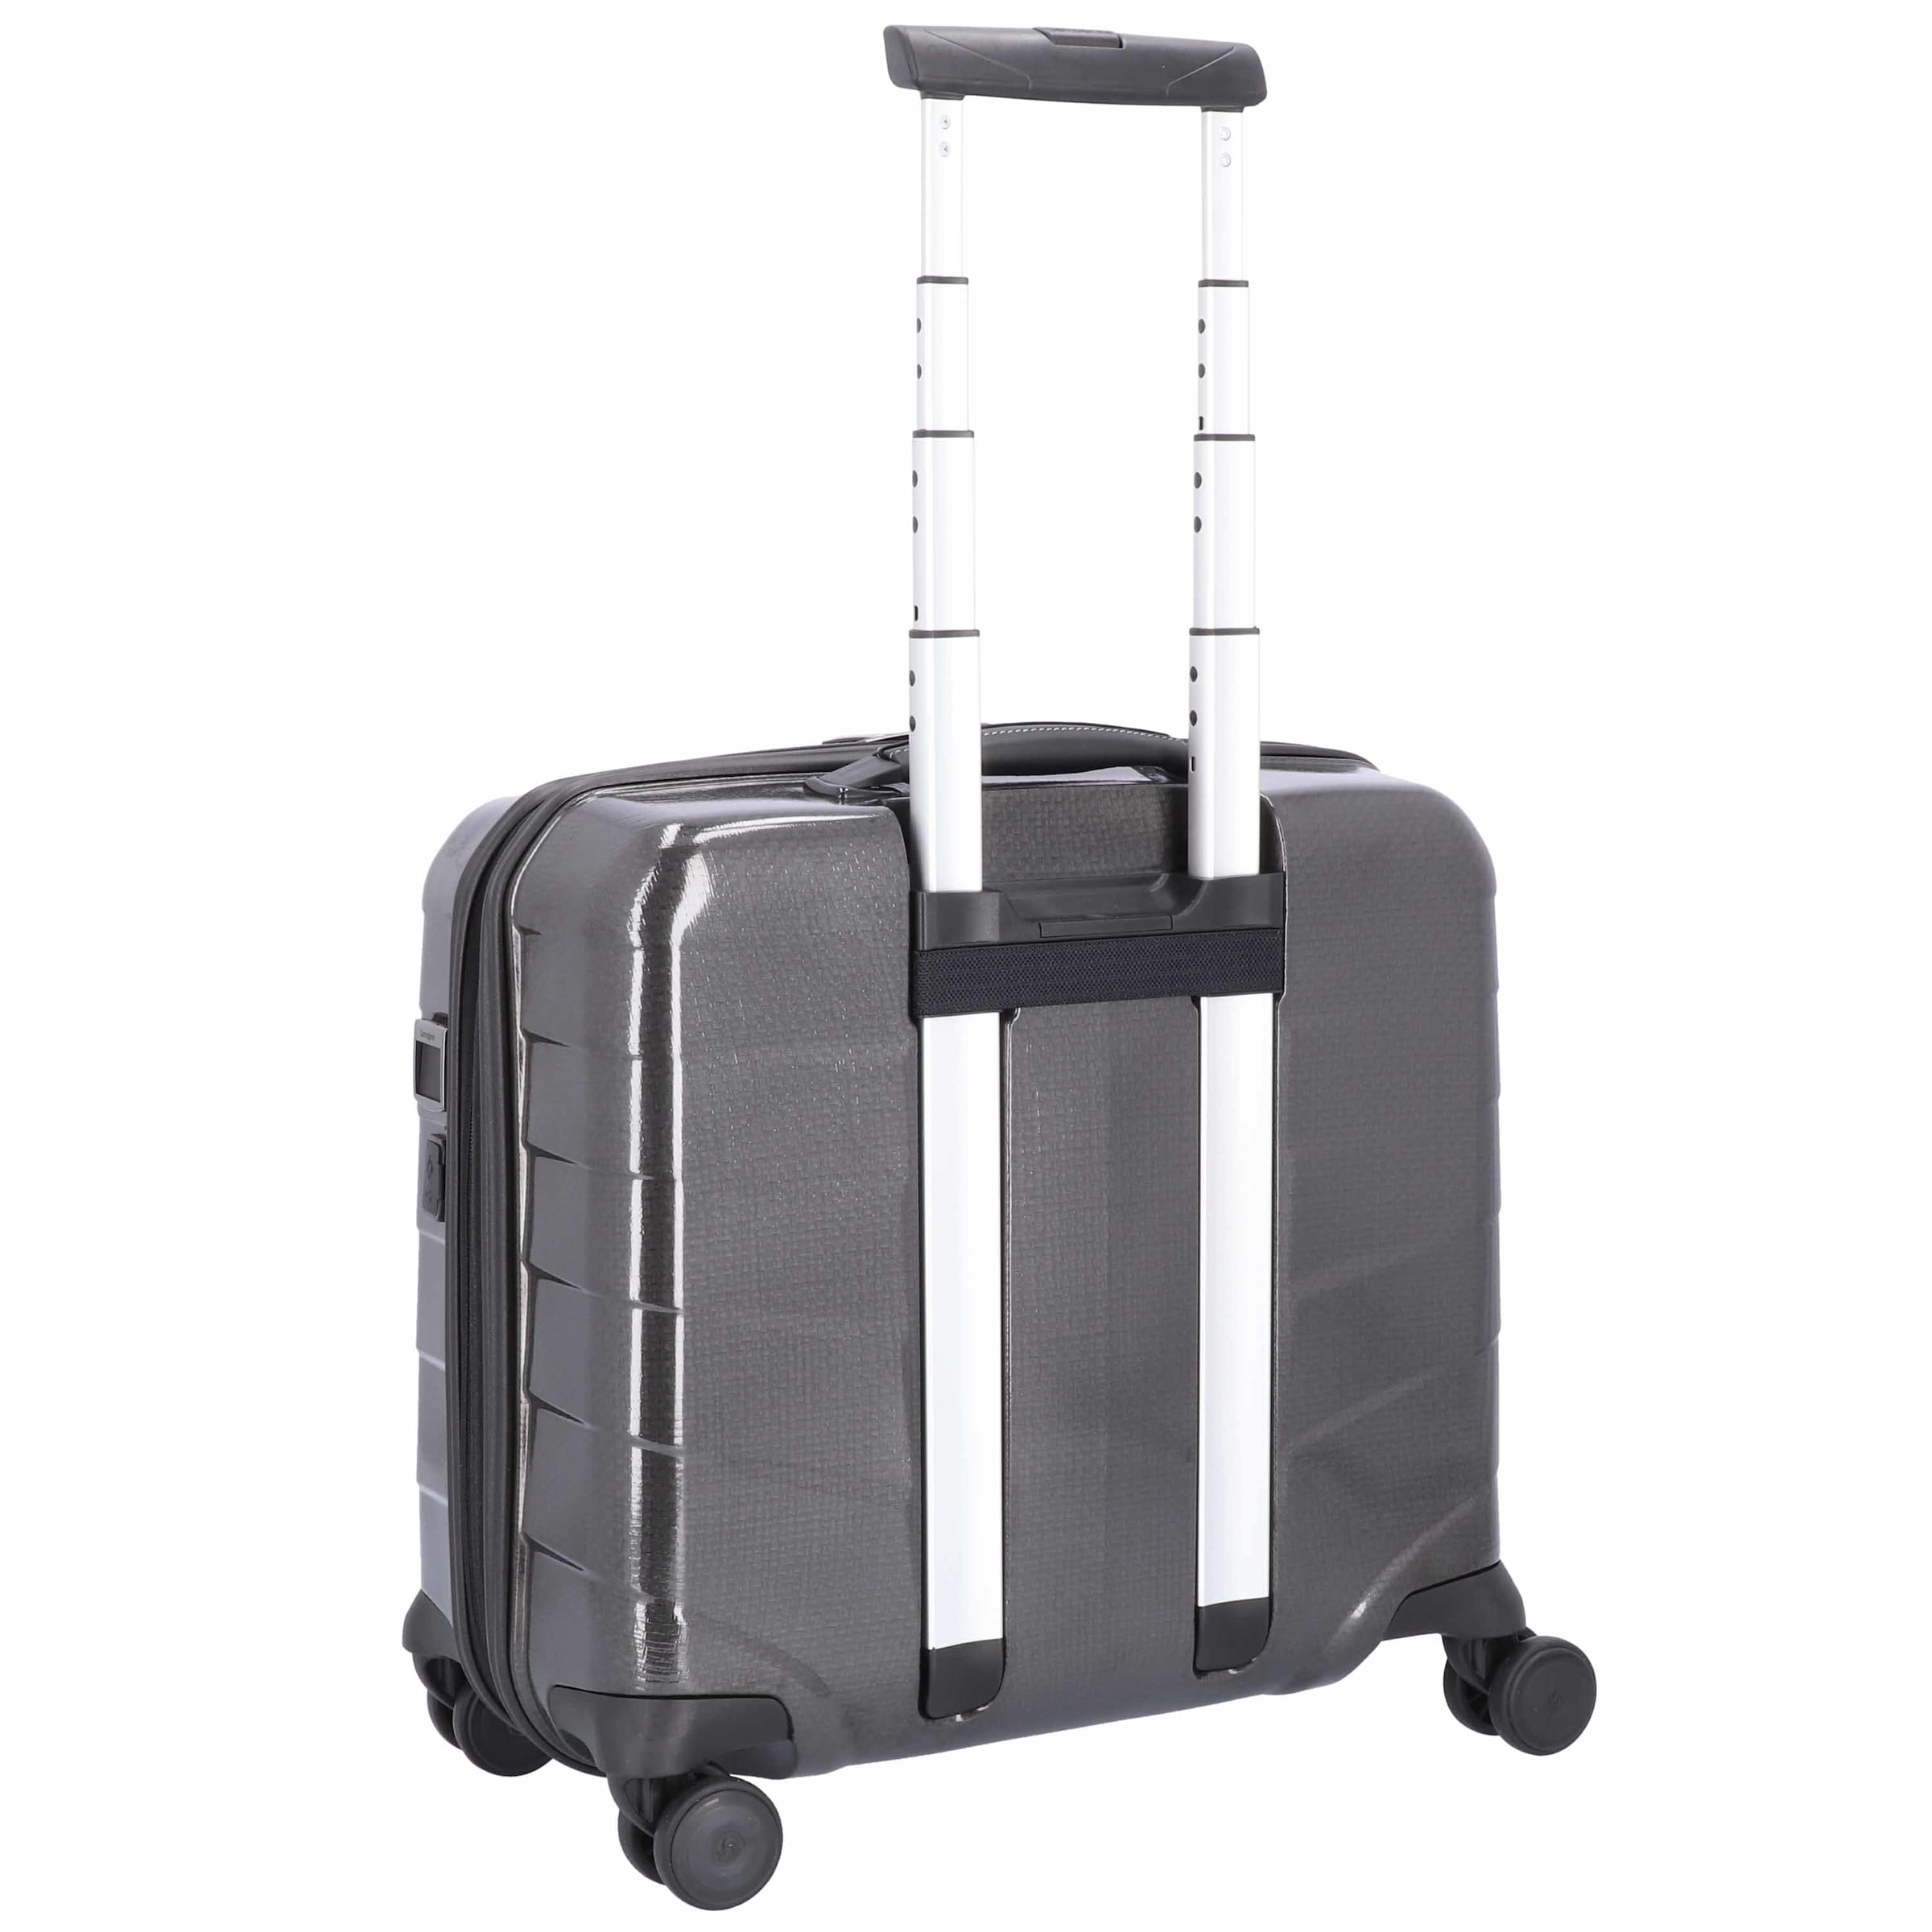 Schwarz Samsonite In Businesstrolley 44 Cm hdQtsrCx